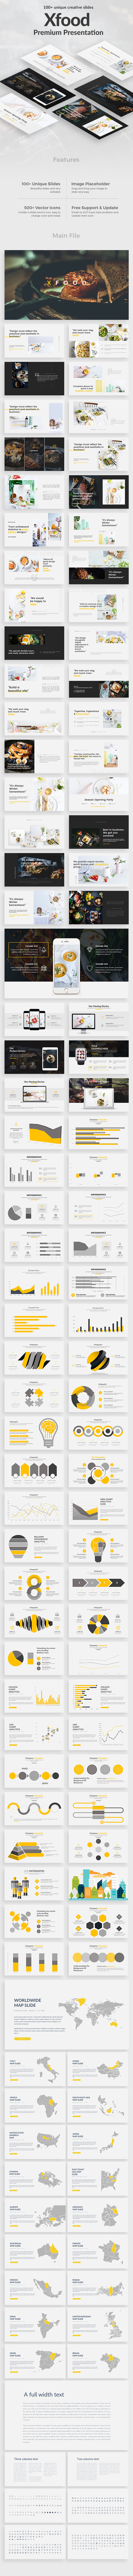 GraphicRiver Xfood Powerpoint Template 20872903